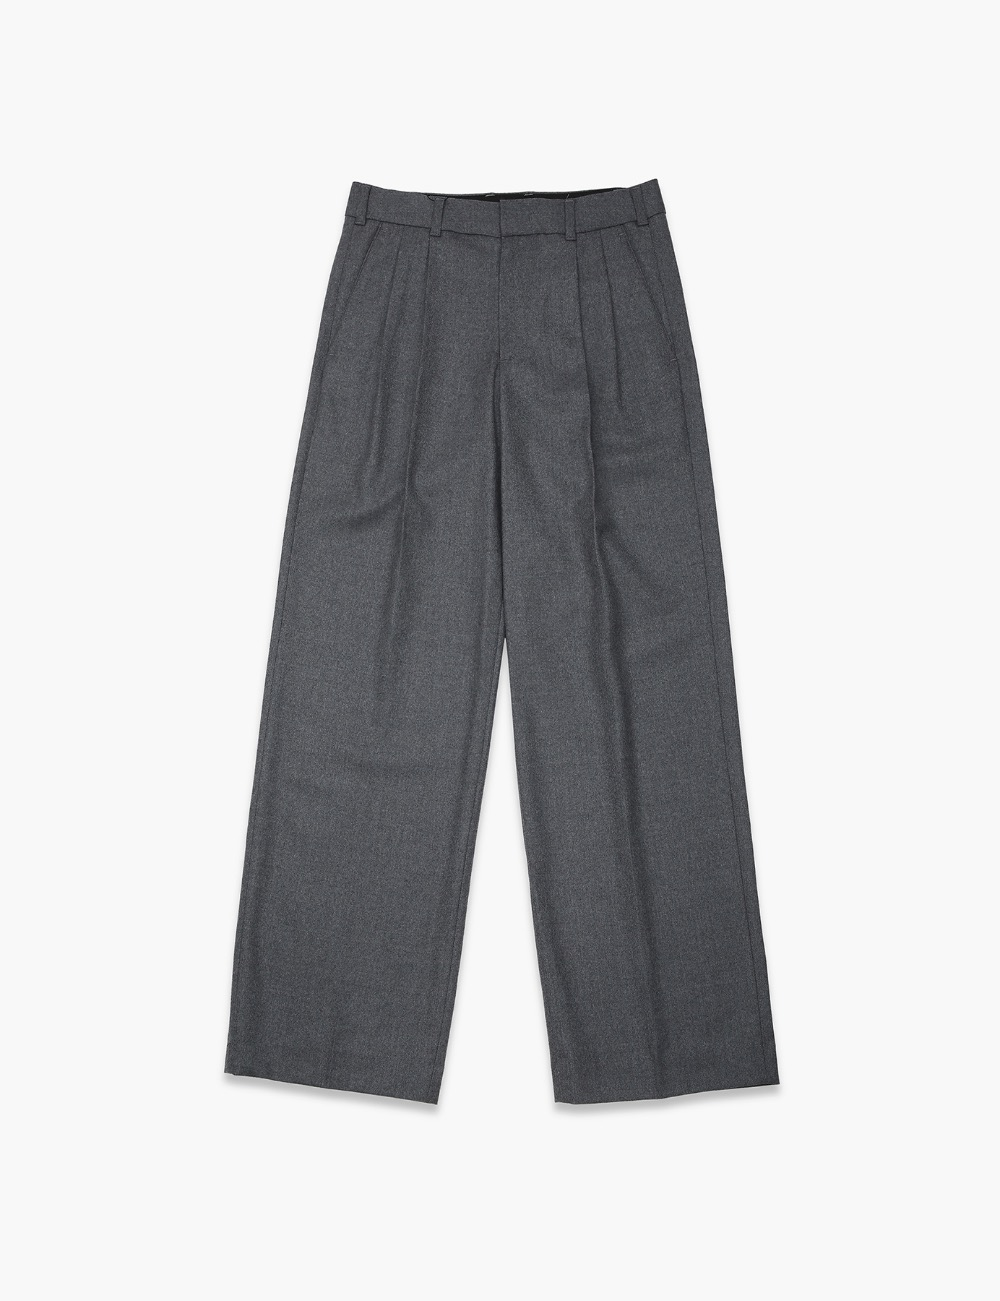 PLEATED FRONT WIDE-LEG TROUSERS (GRAY)